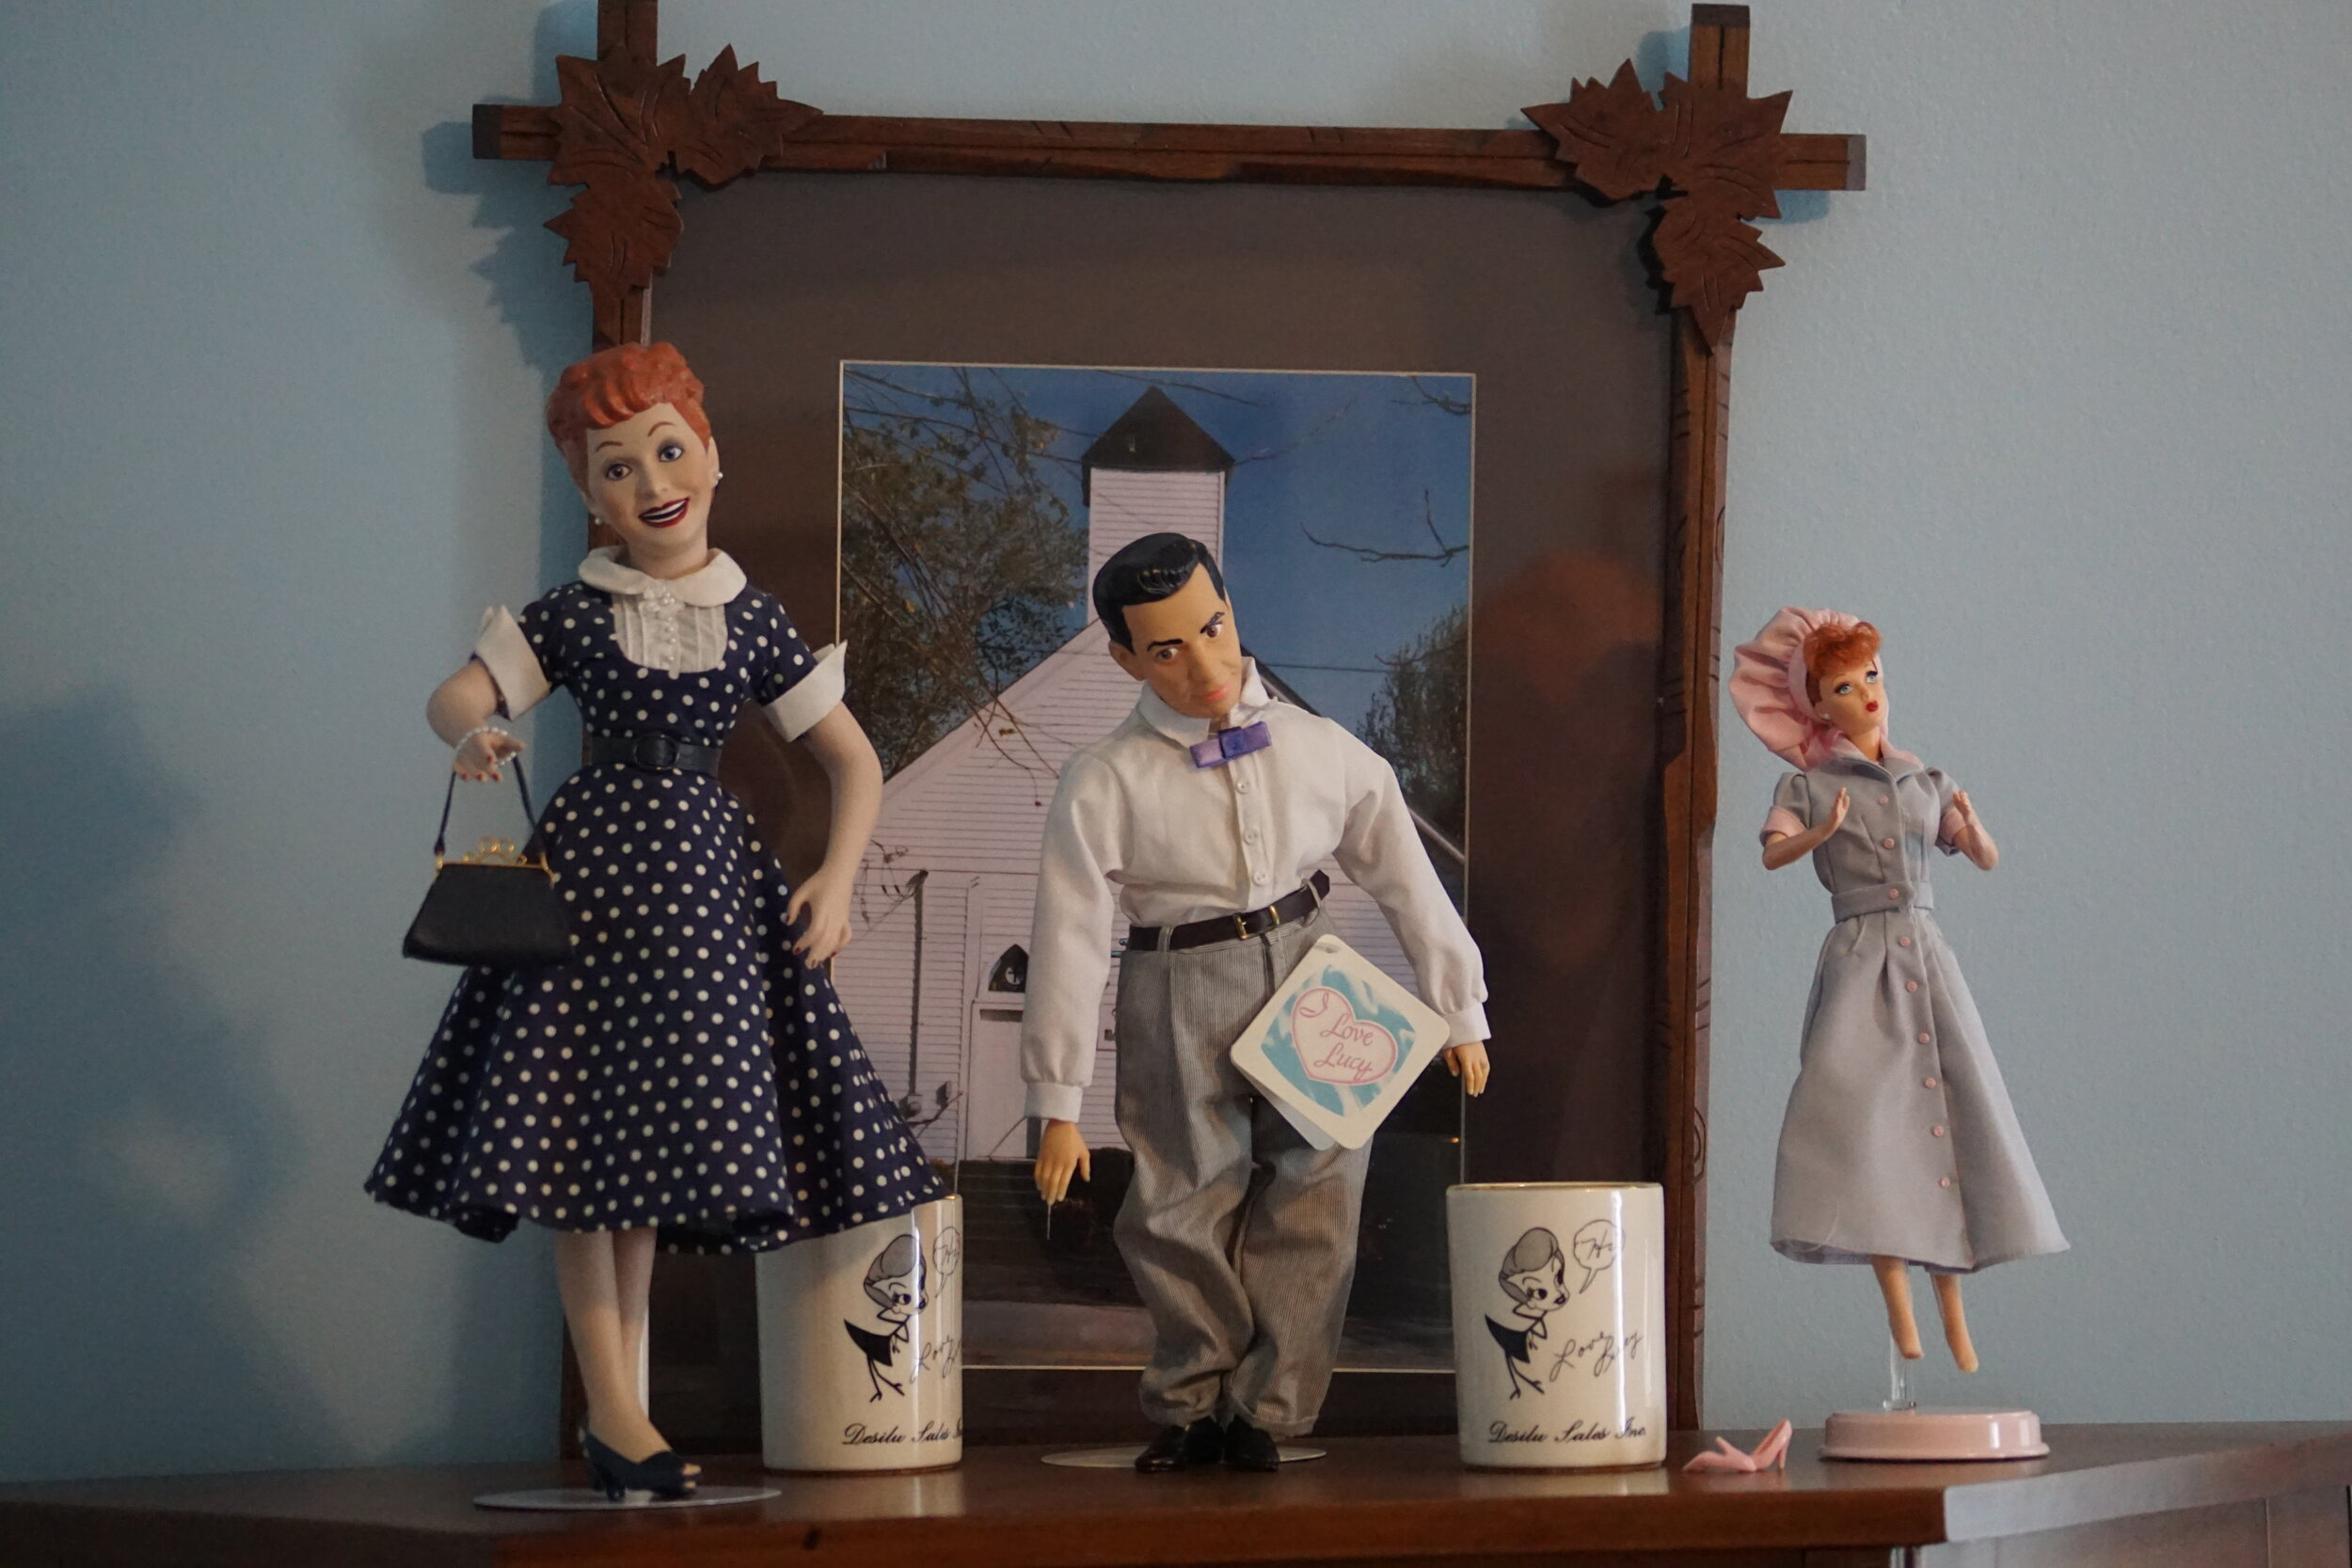 """Memorabilia from """"I Love Lucy"""" adorns many spaces throughout Granville. All the pieces are part of one family's personal collection."""